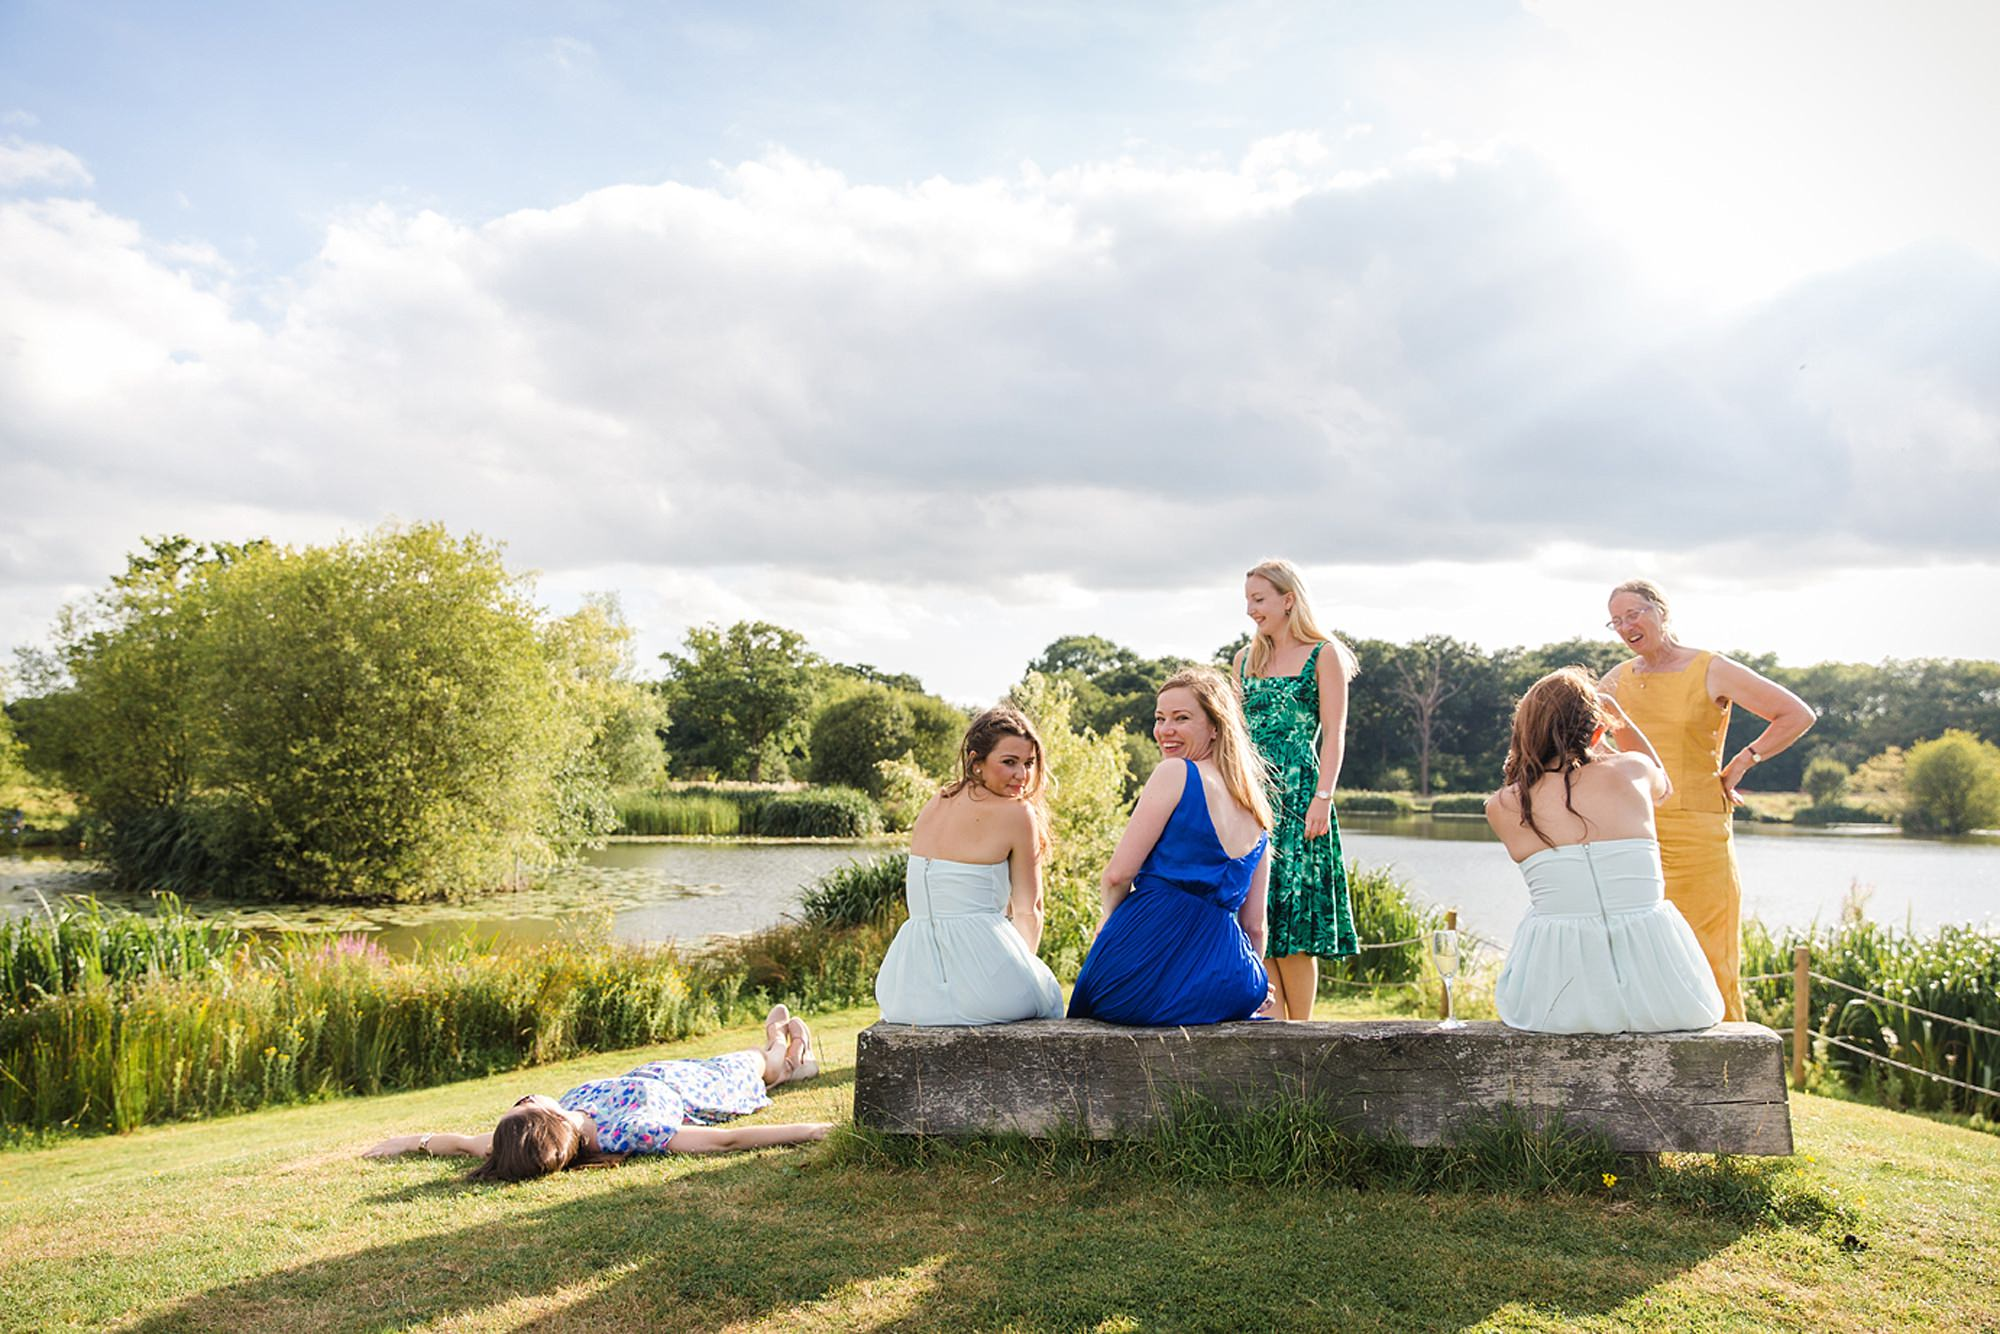 Old Greens Barn Newdigate wedding photography wedding guests by lake